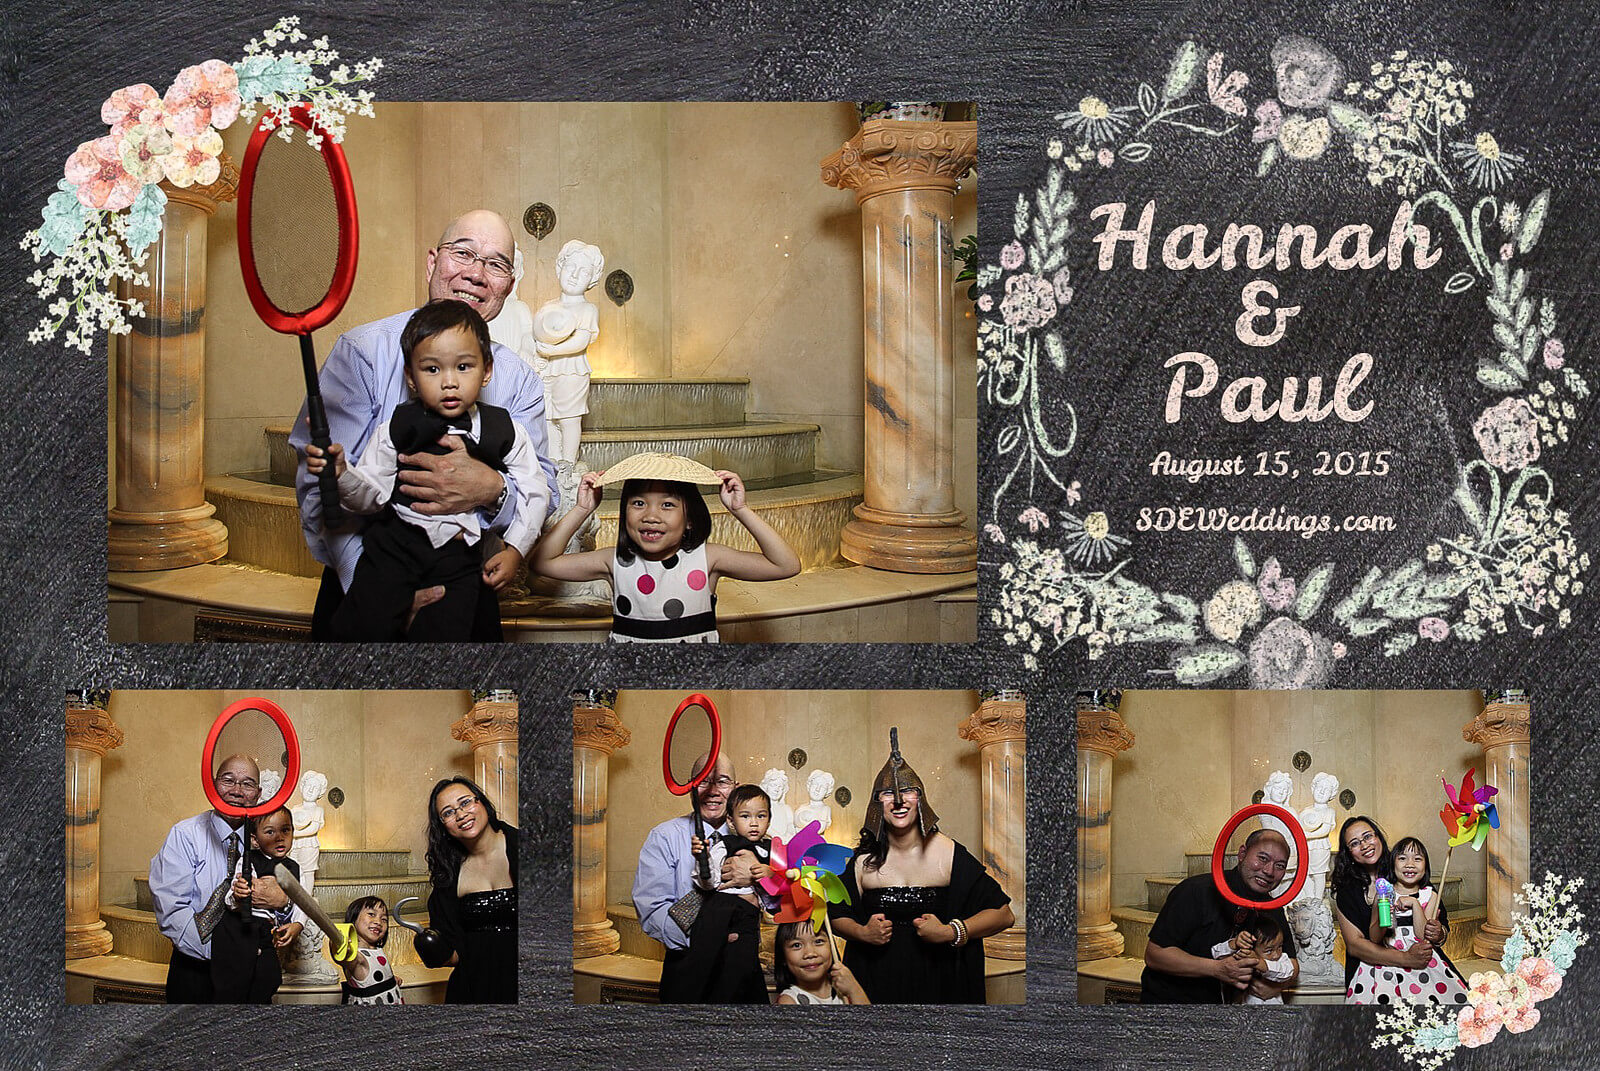 Markham Premiere Banquet Wedding Photobooth Rental 5